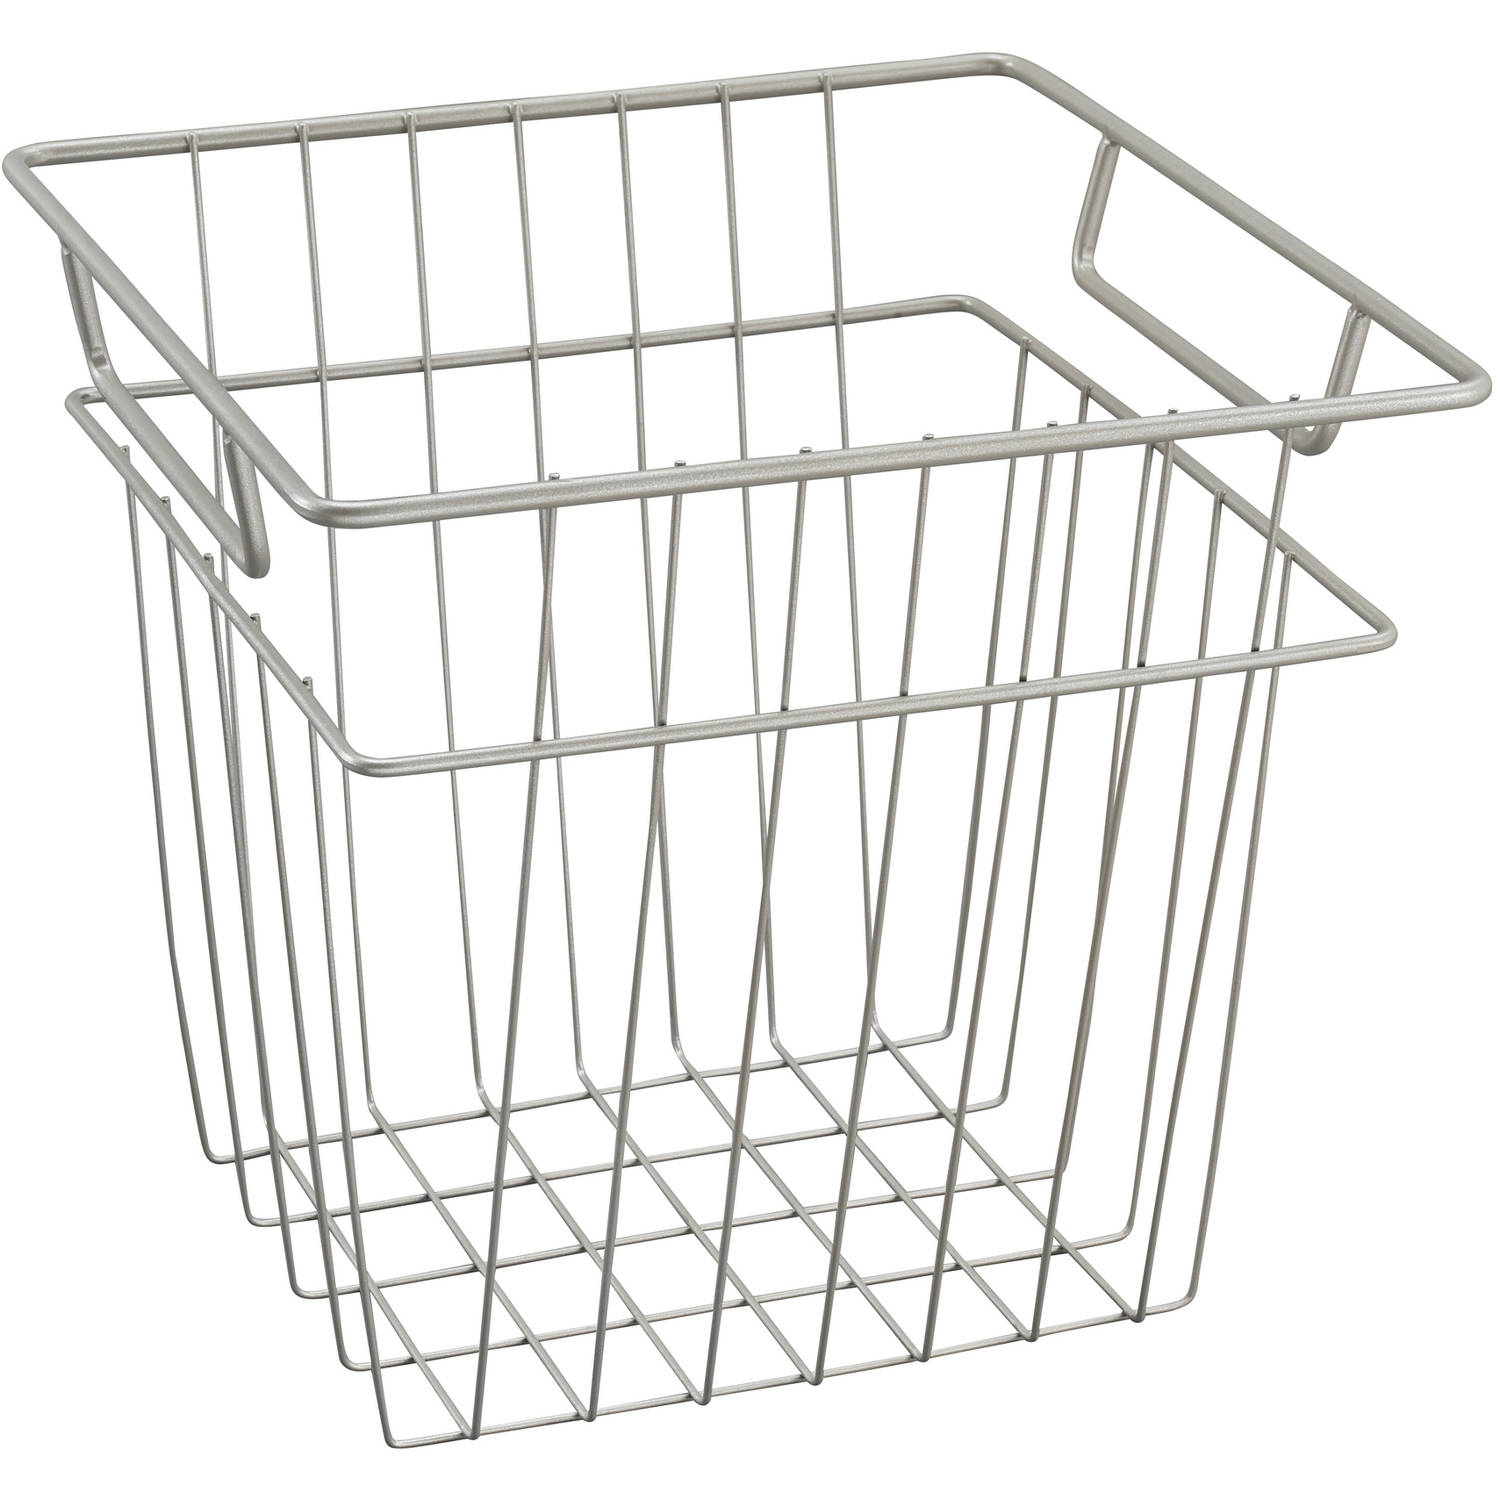 Ordinaire ClosetMaid Wire Basket, Small, Nickel